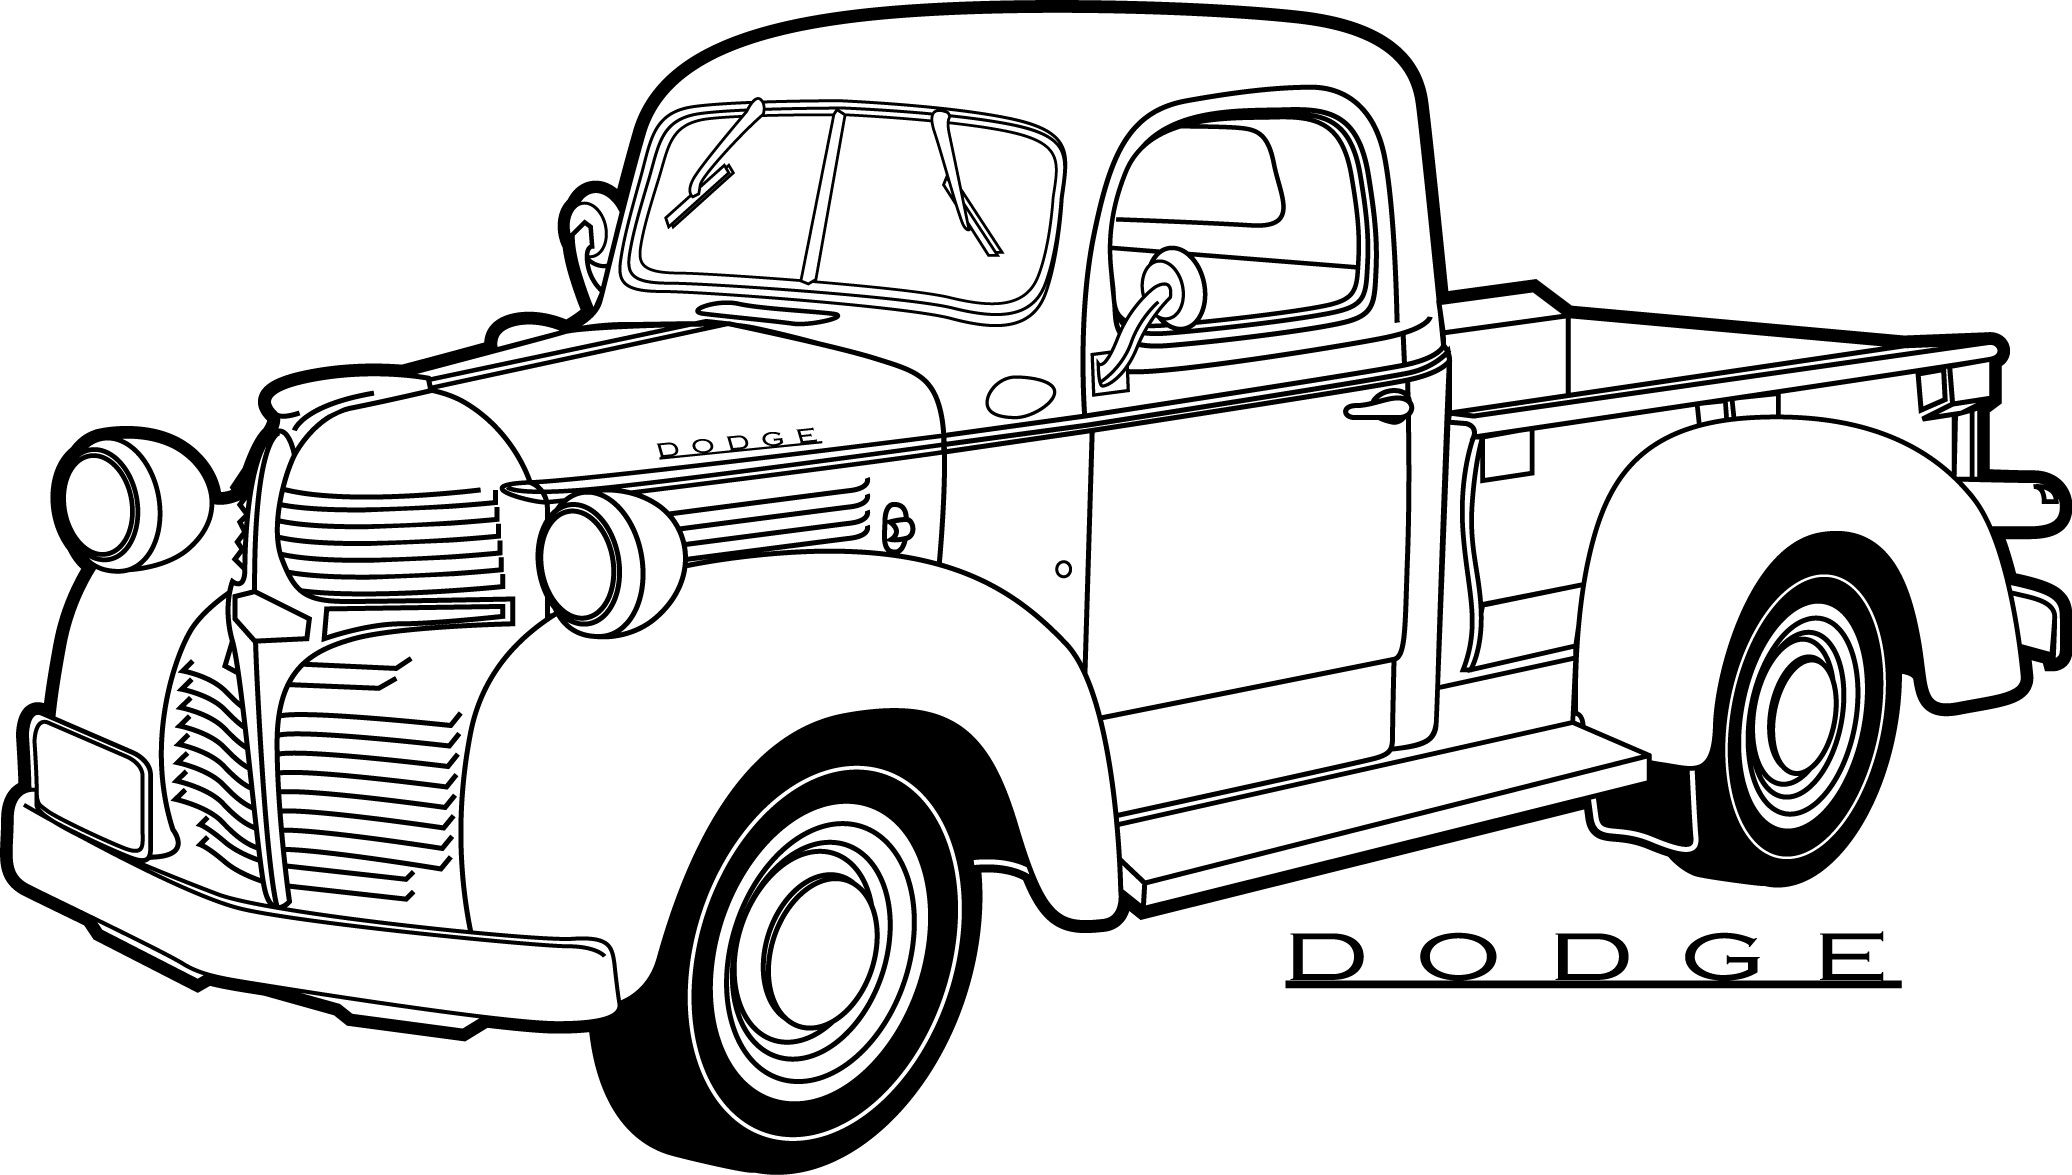 Car Truck Coloring Pages : Pickup truck